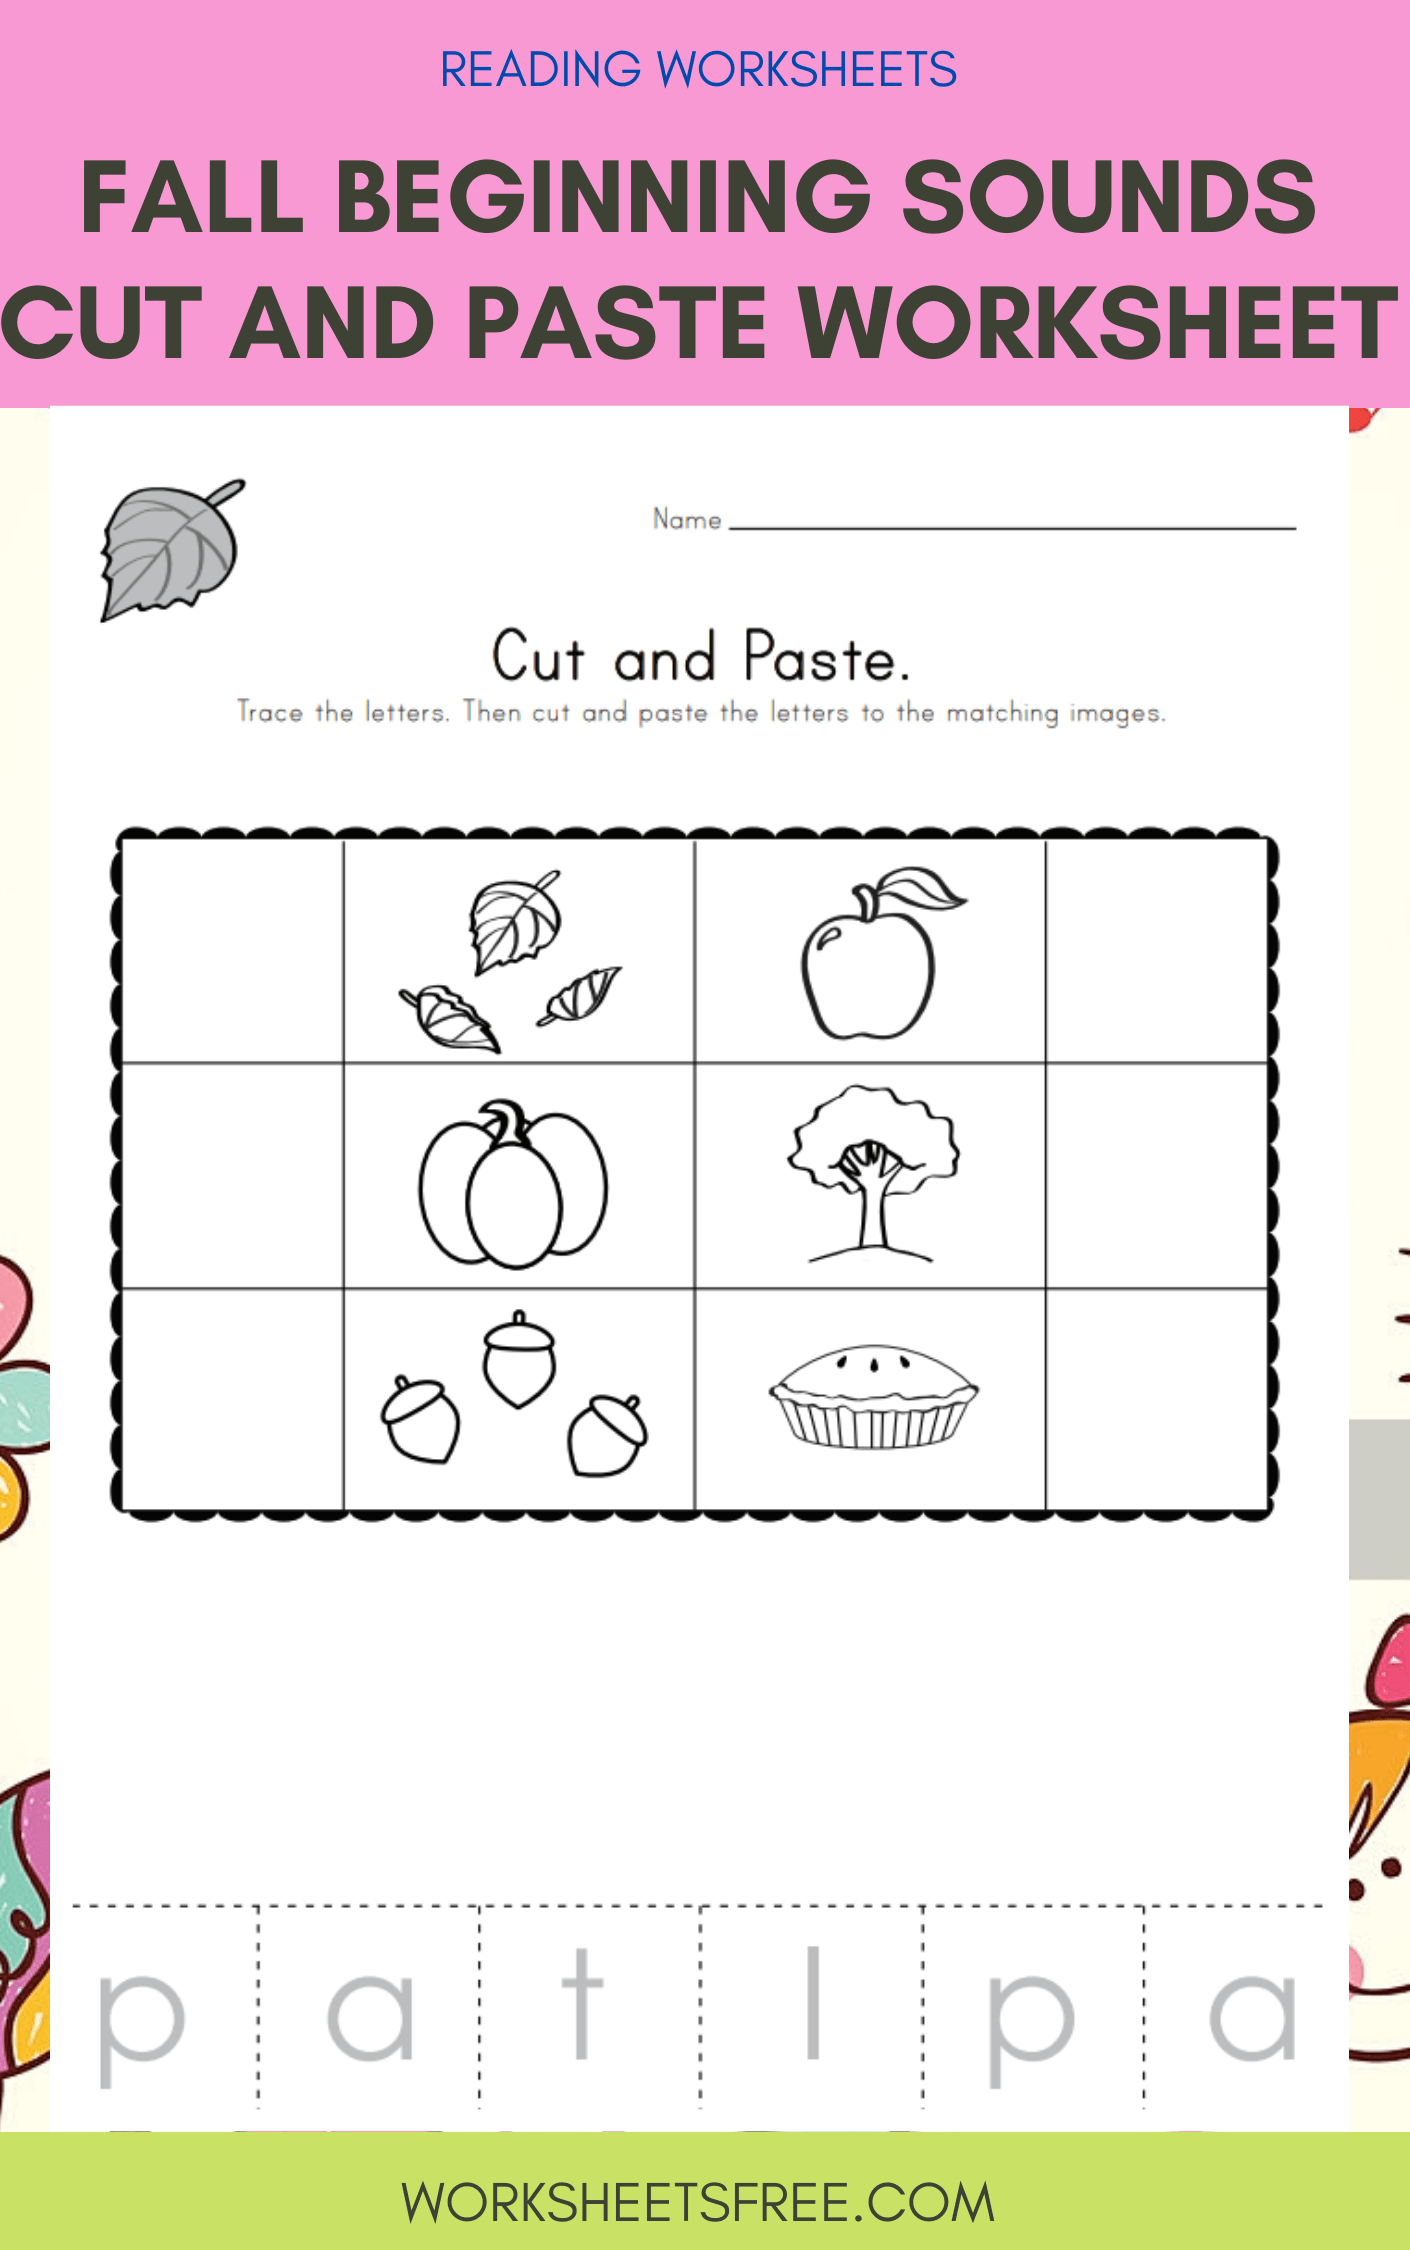 Fall Beginning Sounds Cut And Paste Worksheet